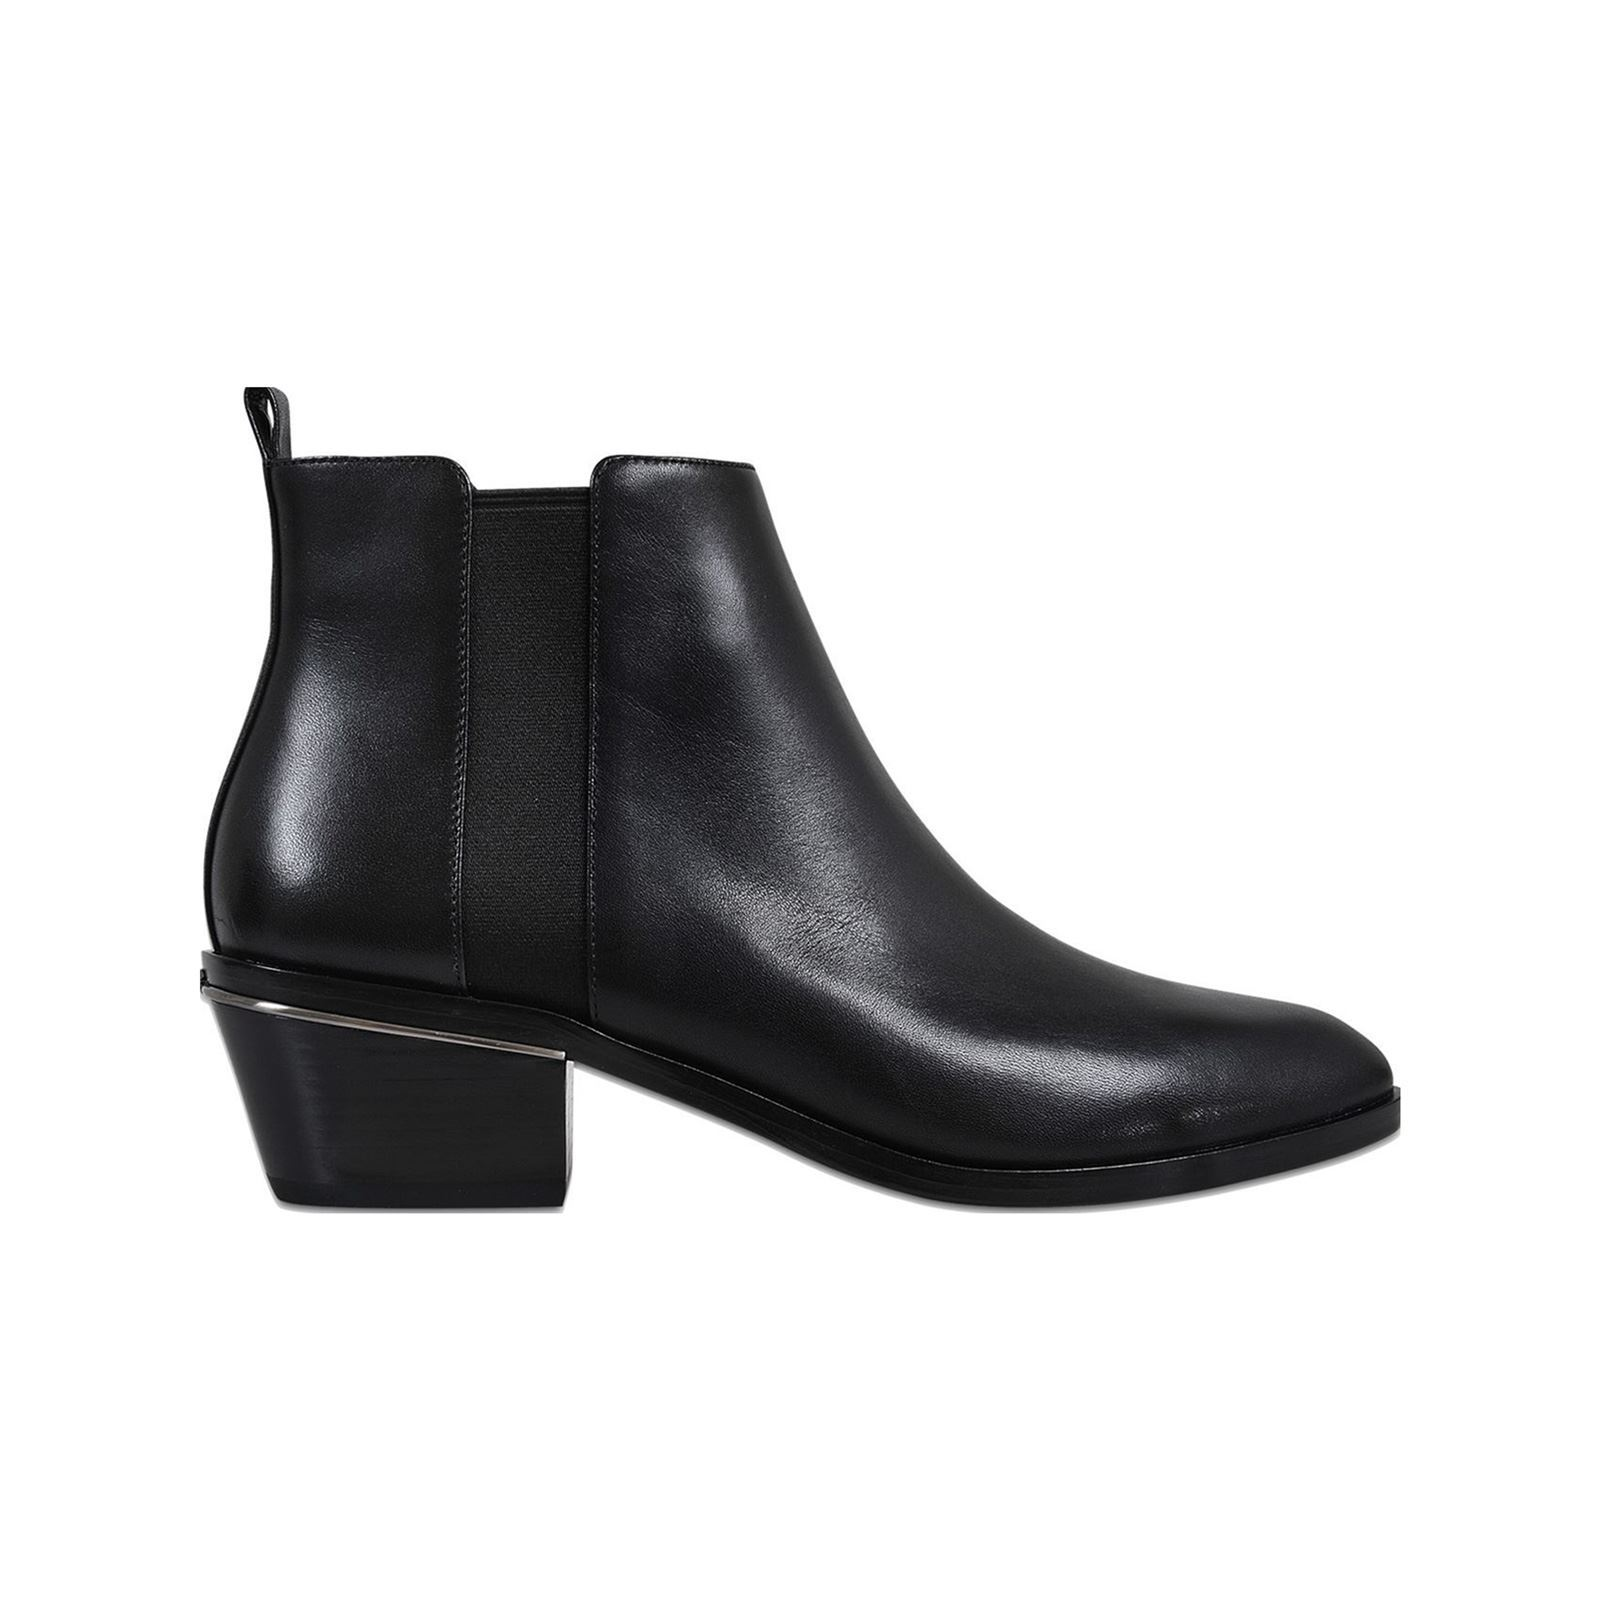 17554900b0aae3 Marc Jacobs Crosby - Bottines en cuir - noir   BrandAlley